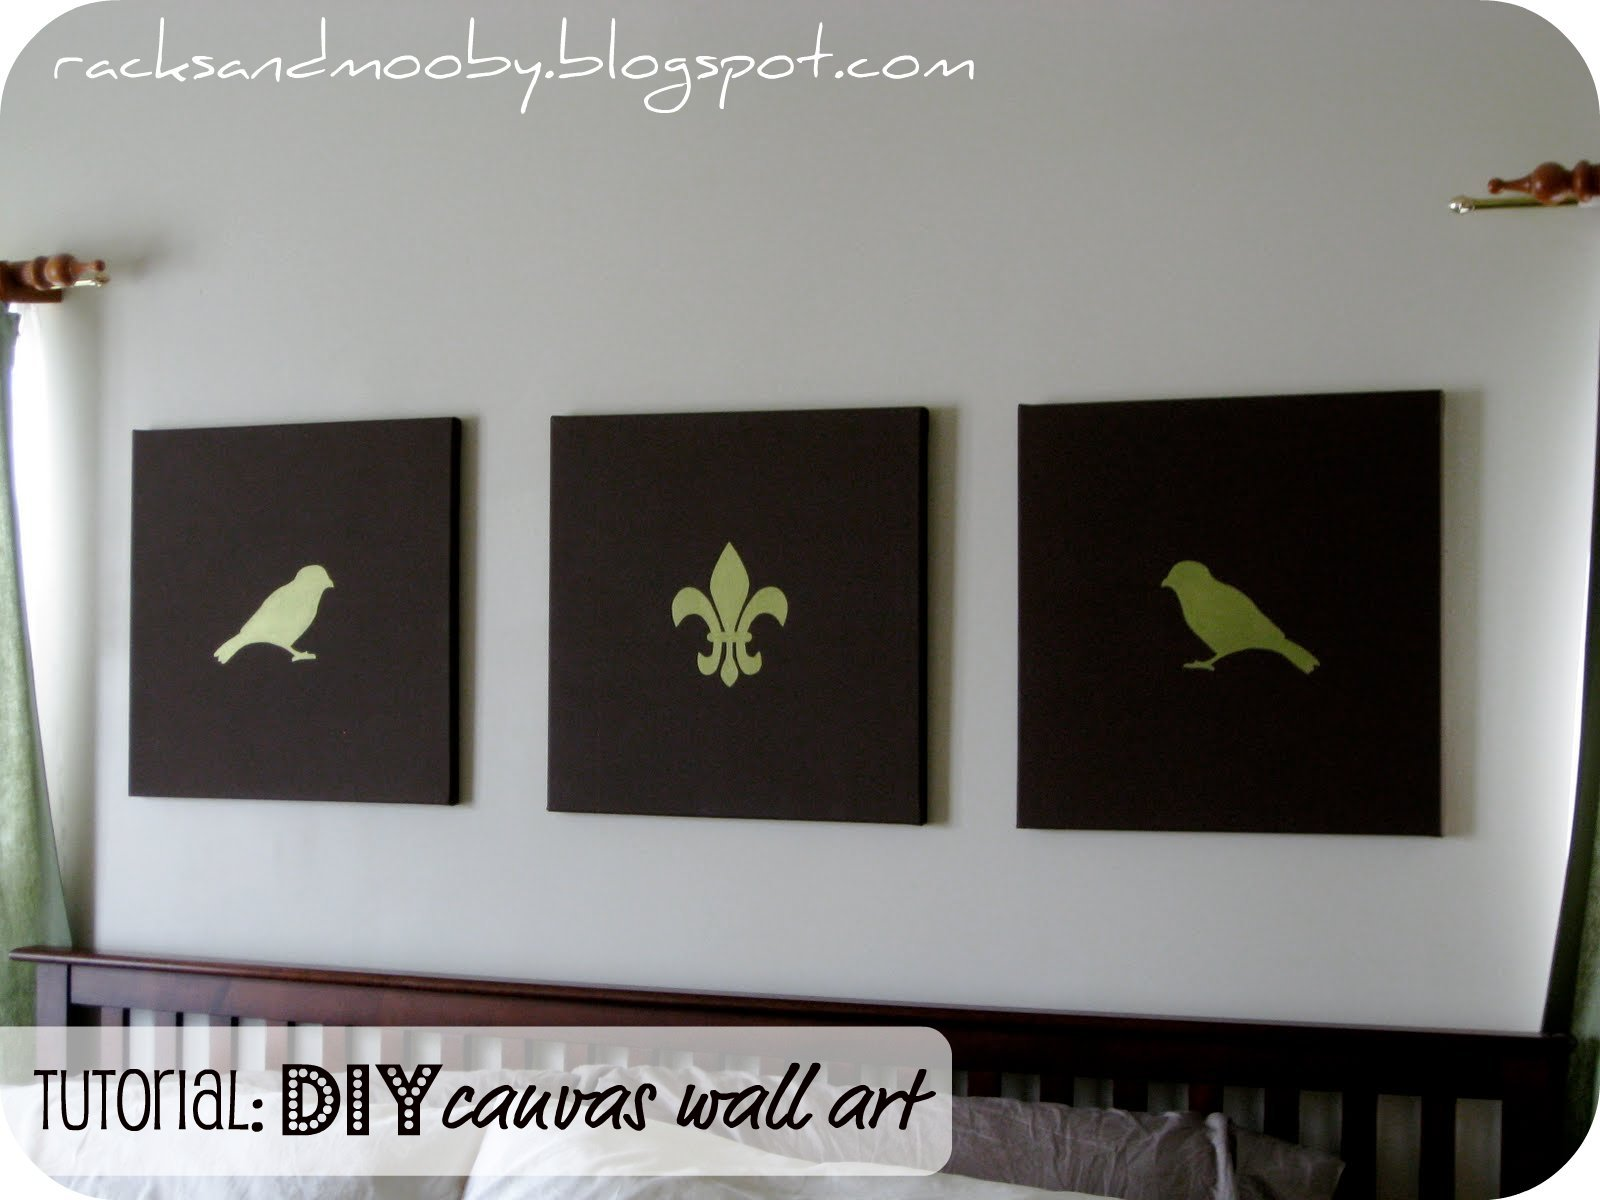 RACKS and Mooby: DIY Canvas Art {tweet tweet